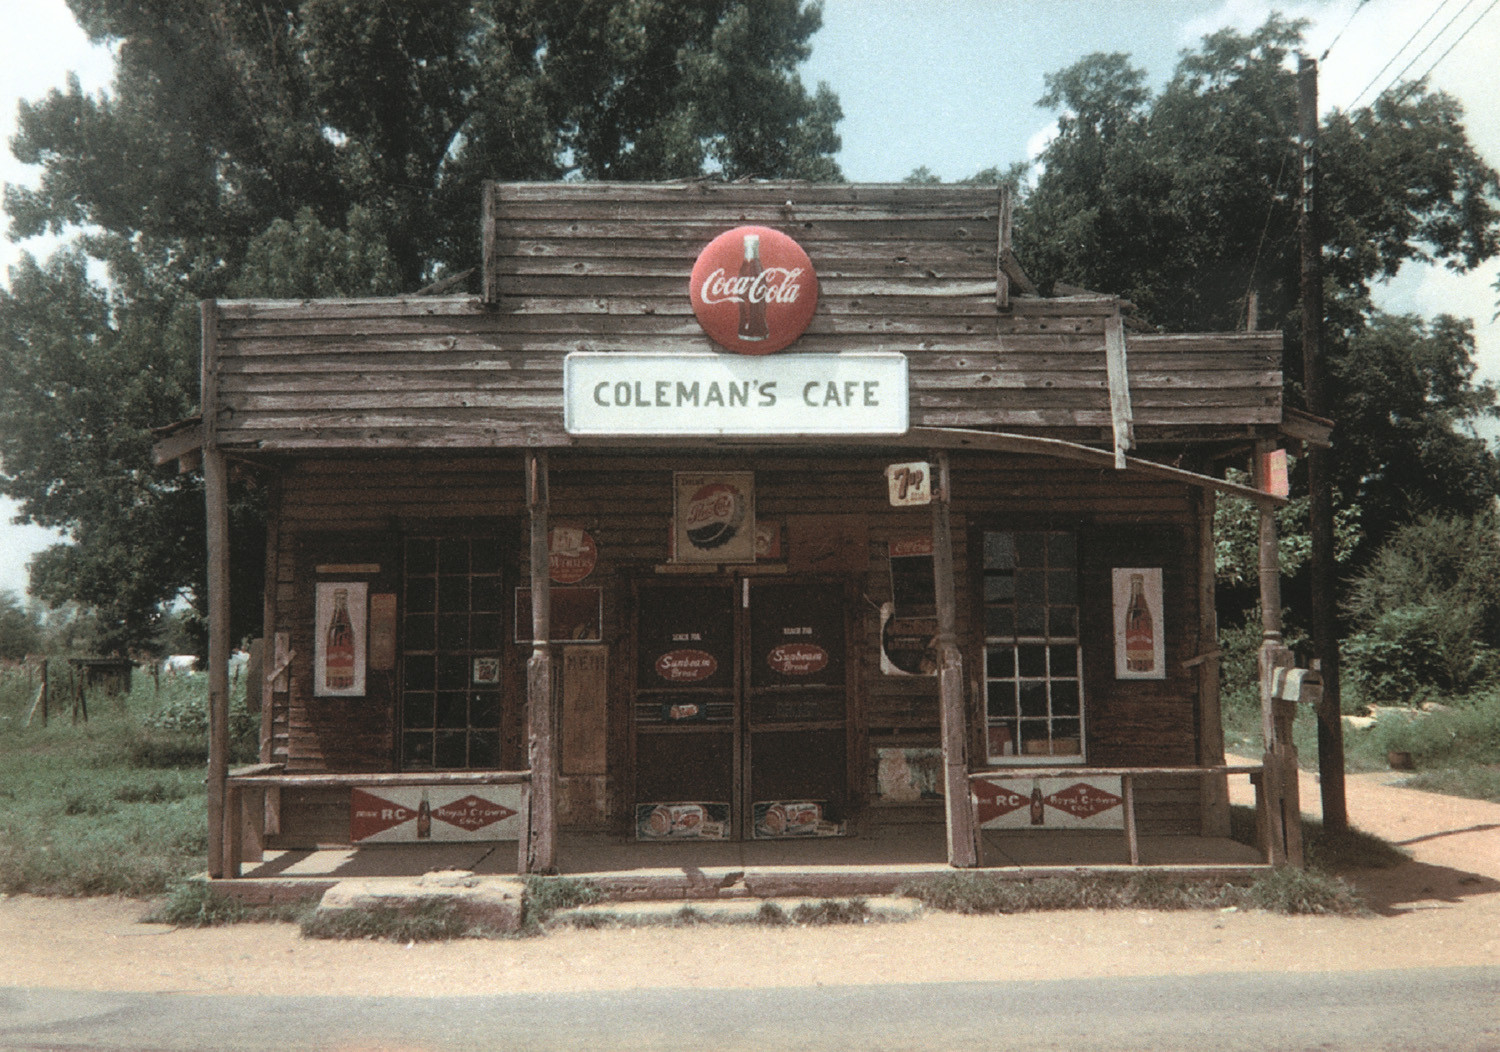 William Christenberry, Coleman's Café, Greensboro, Alabama, 1967